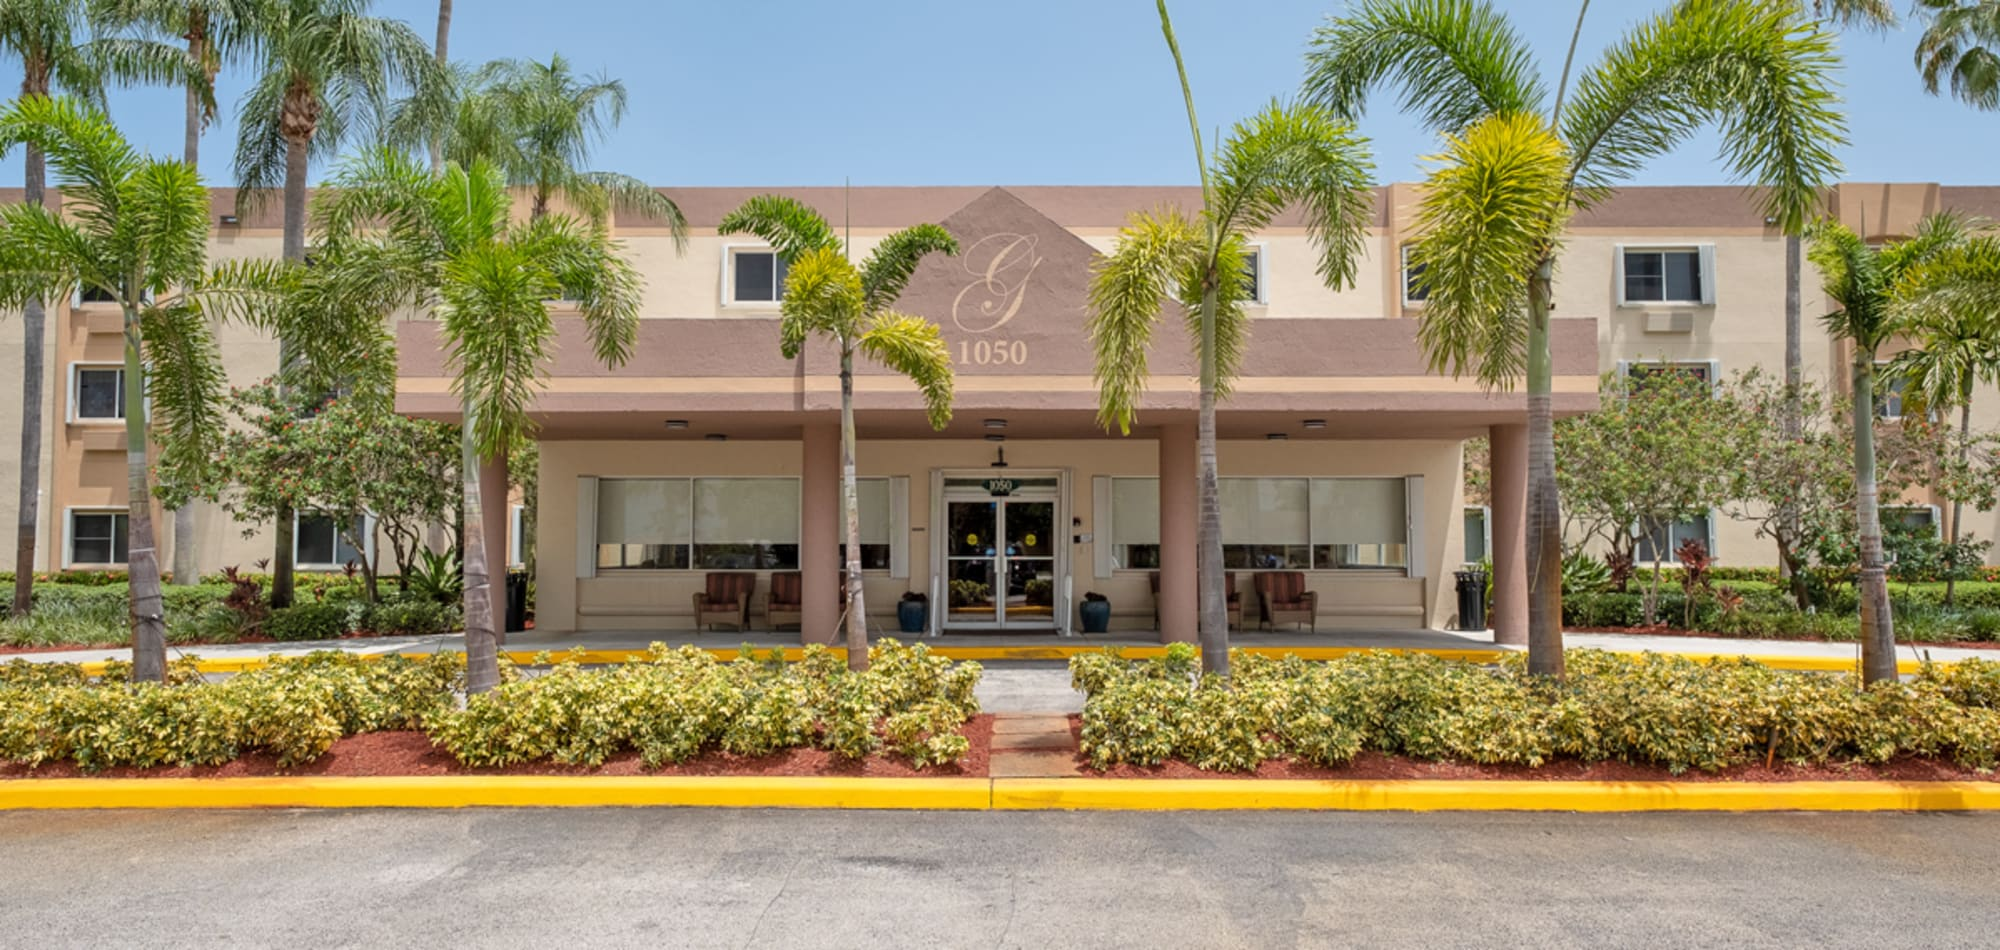 Grand Villa of Deerfield Beach in Florida senior living